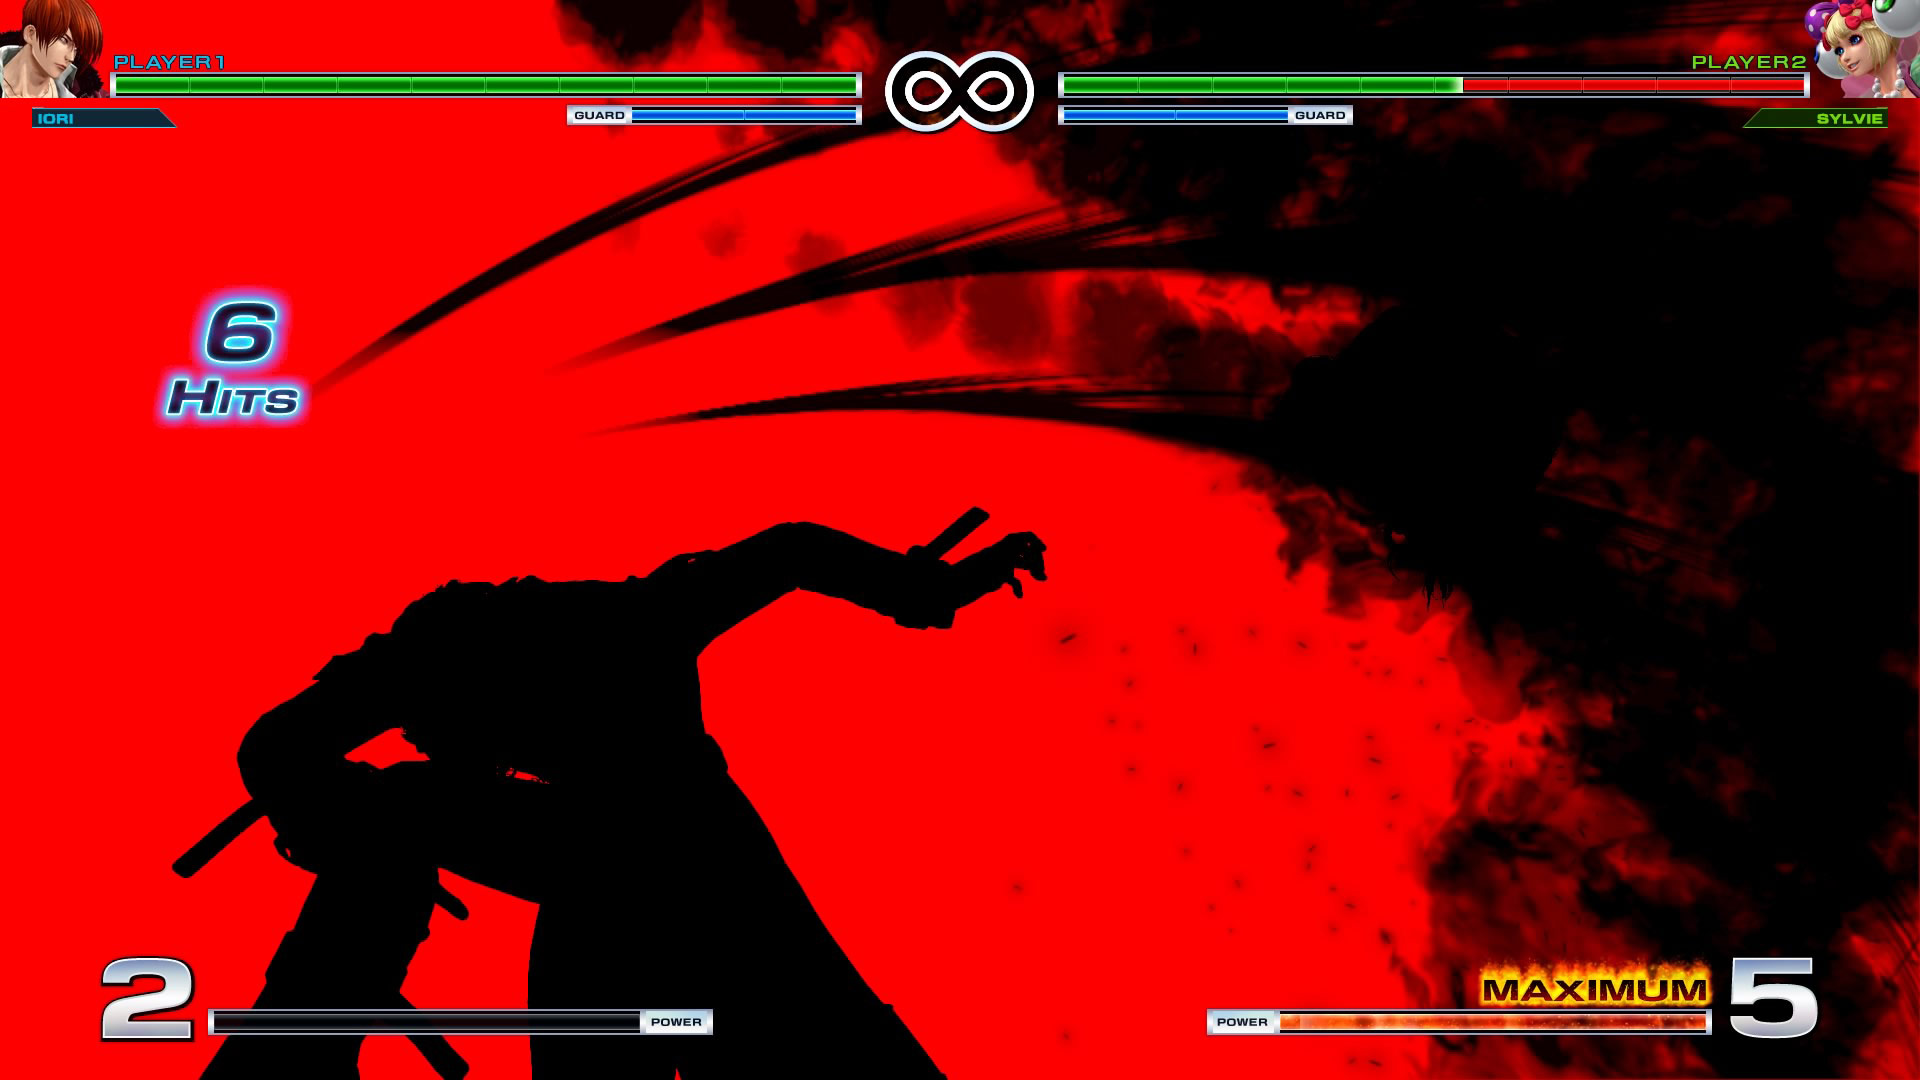 King of Fighters 14 1.10 graphics update 9 out of 60 image gallery